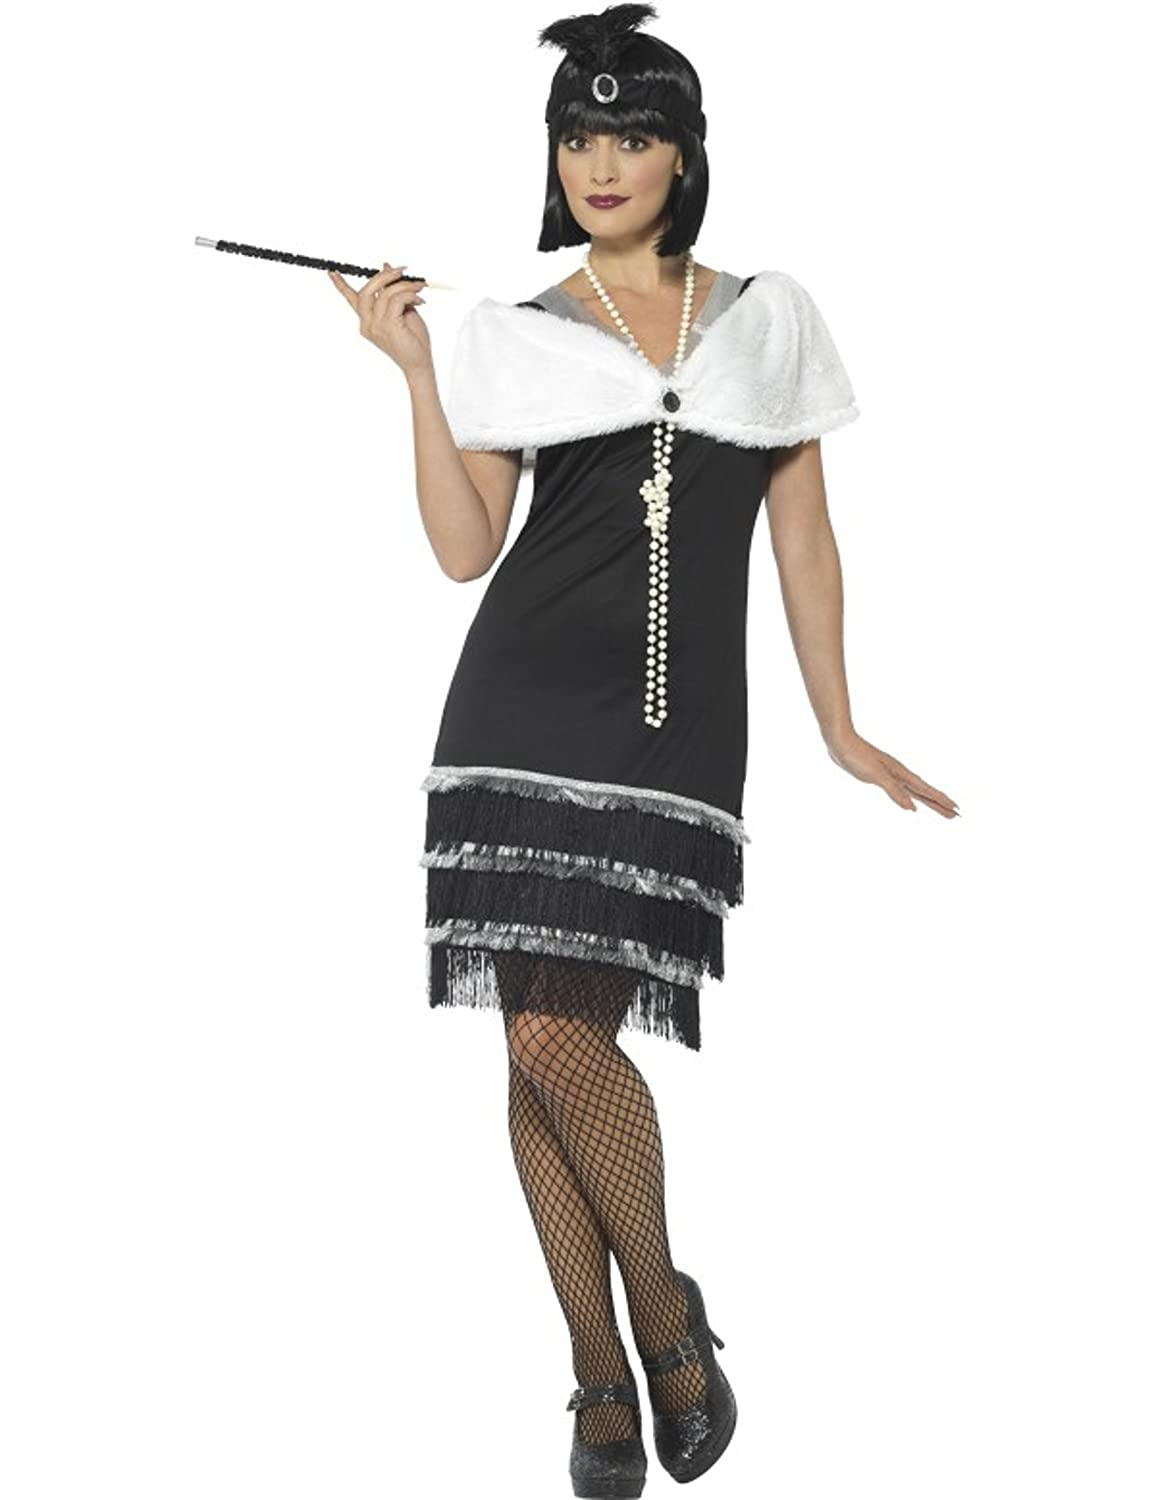 Flapper Costumes, Flapper Girl Costume Smiffys Womens Flapper Costume $23.59 AT vintagedancer.com